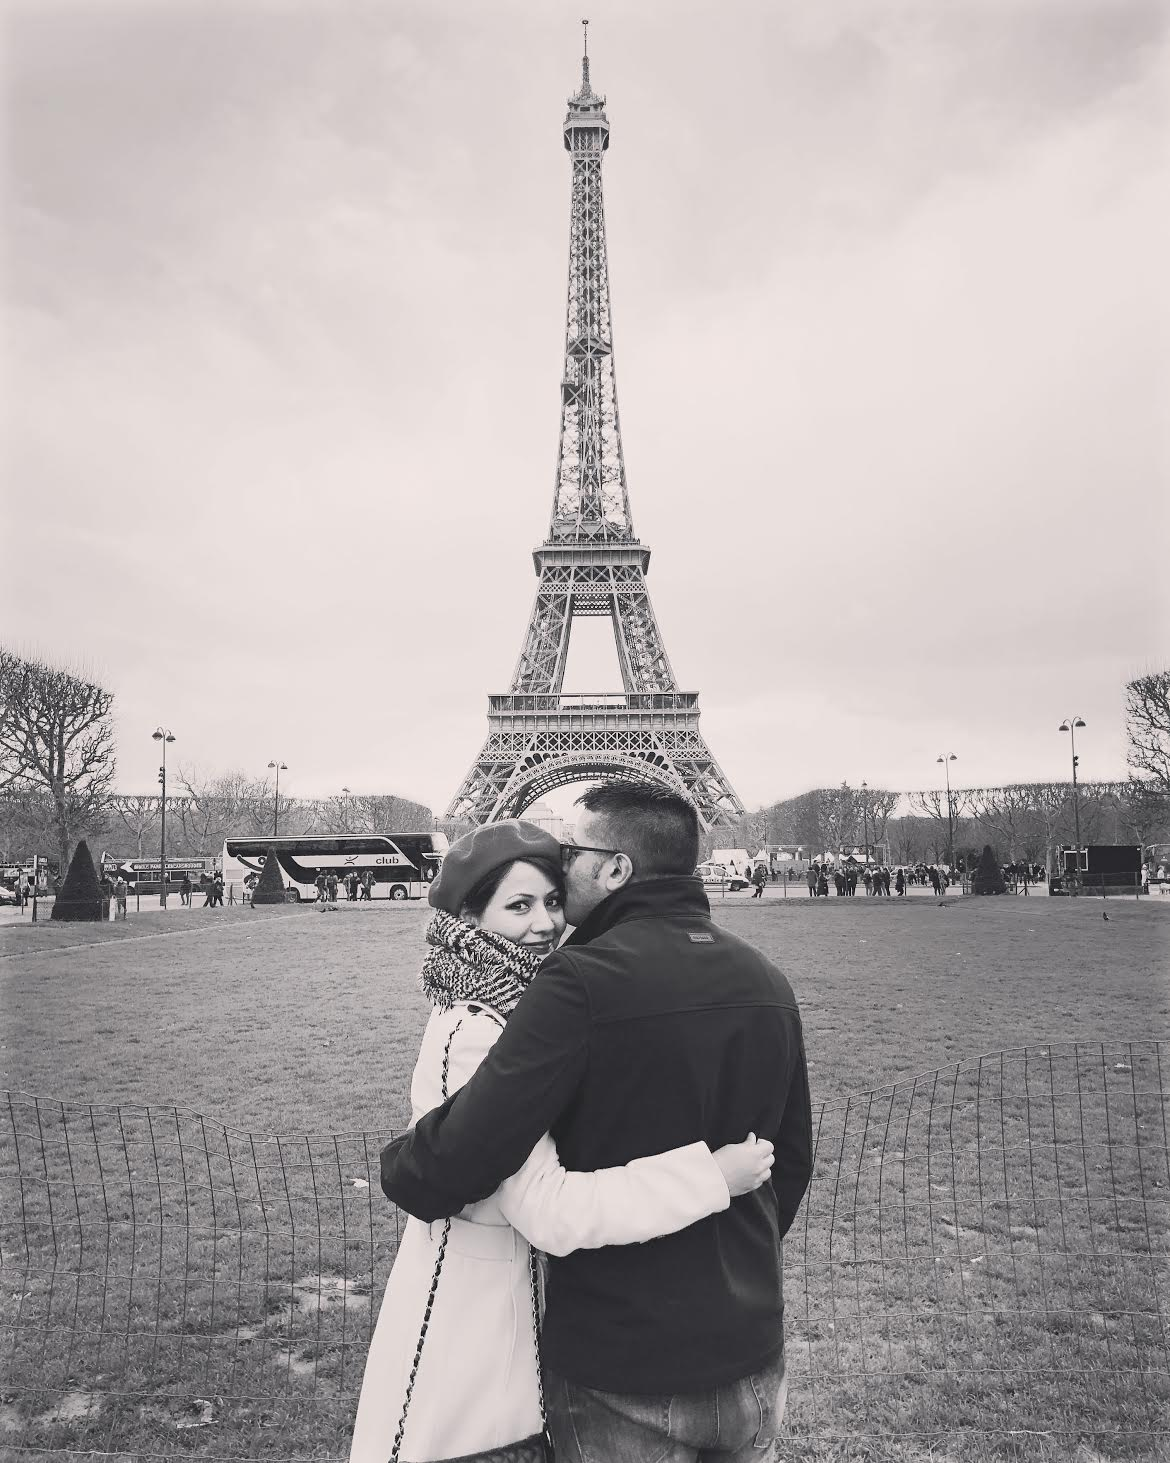 Muslim-travel-tips-romance-Eiffel-Tower.jpg